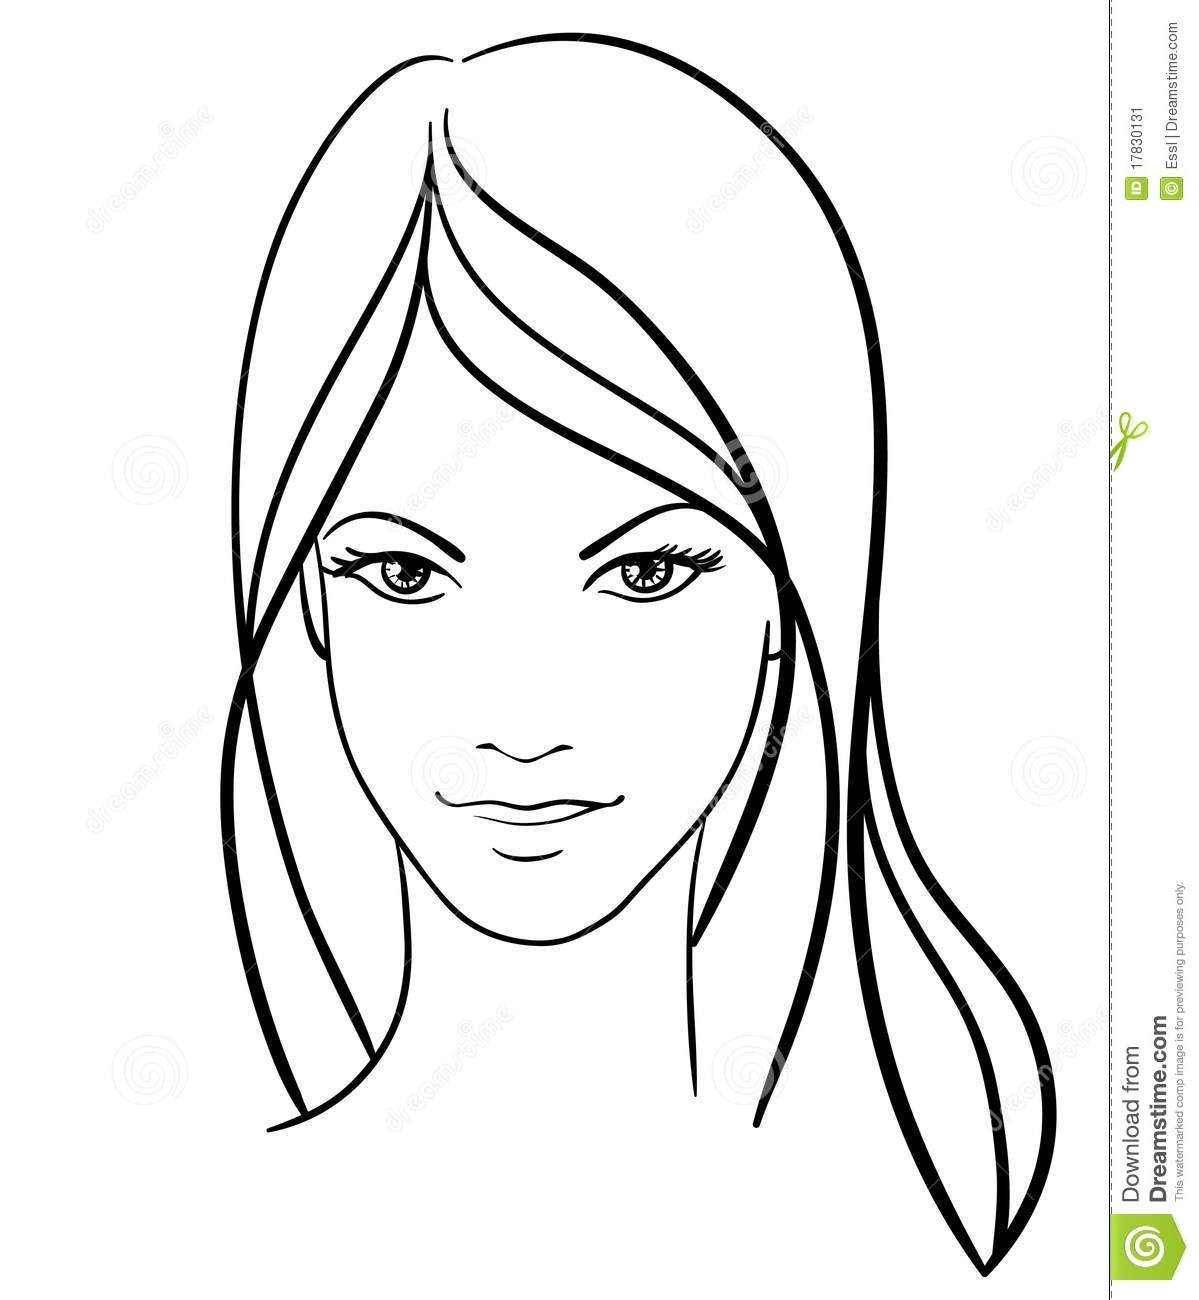 Women Faces Drawing At Getdrawings | Free For Personal Use regarding Simple Black And White Drawings Of Faces 30105